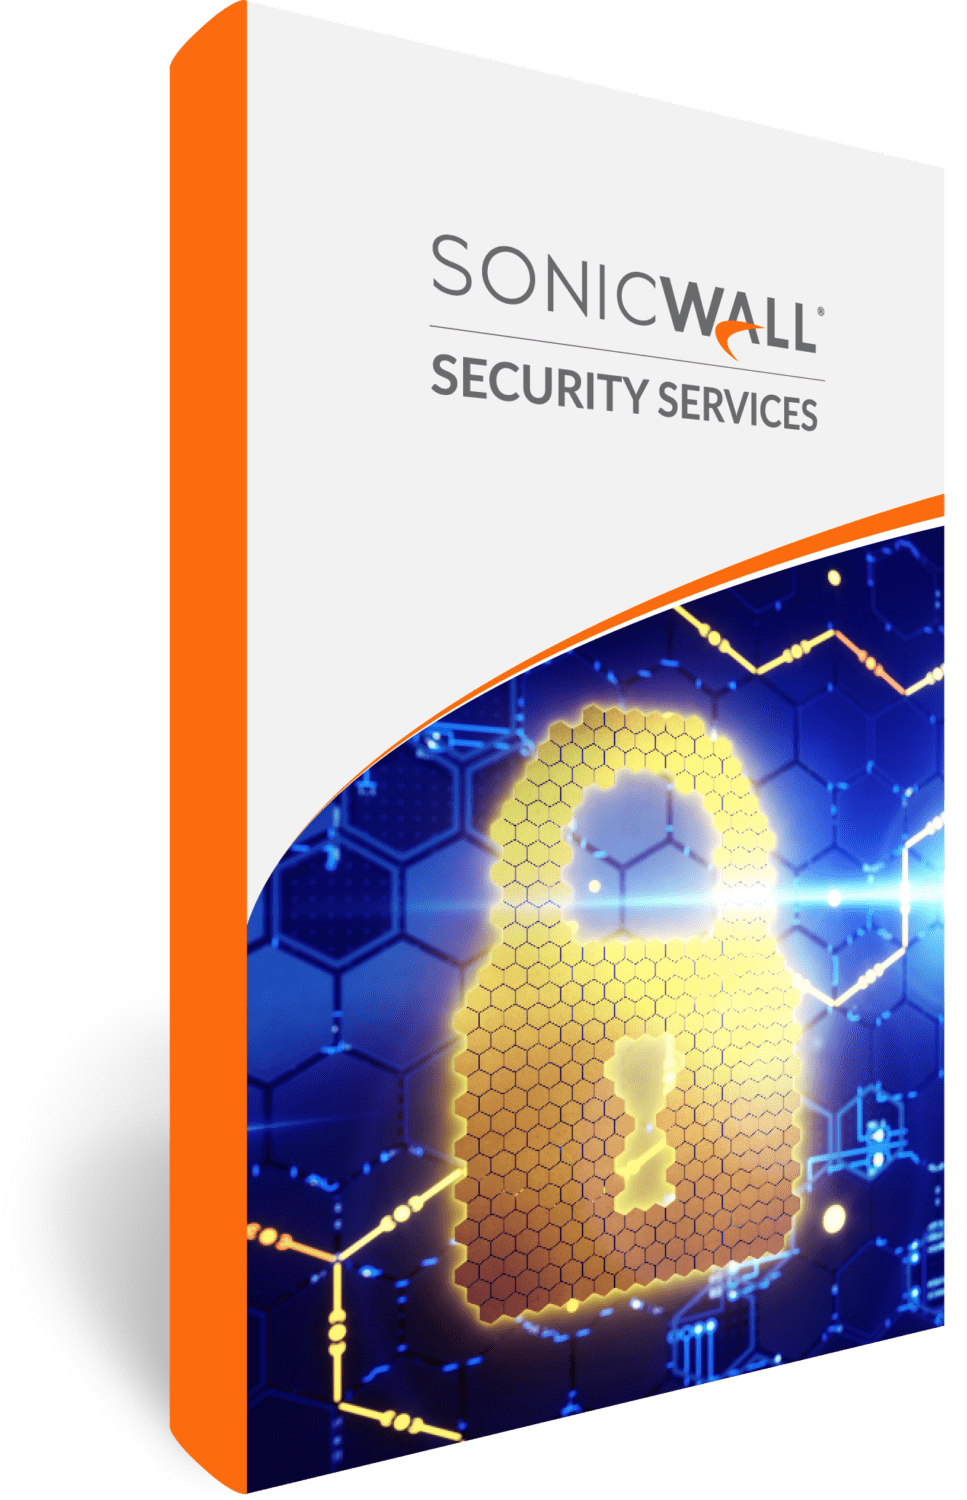 SonicWall firewall gateway security services give you more